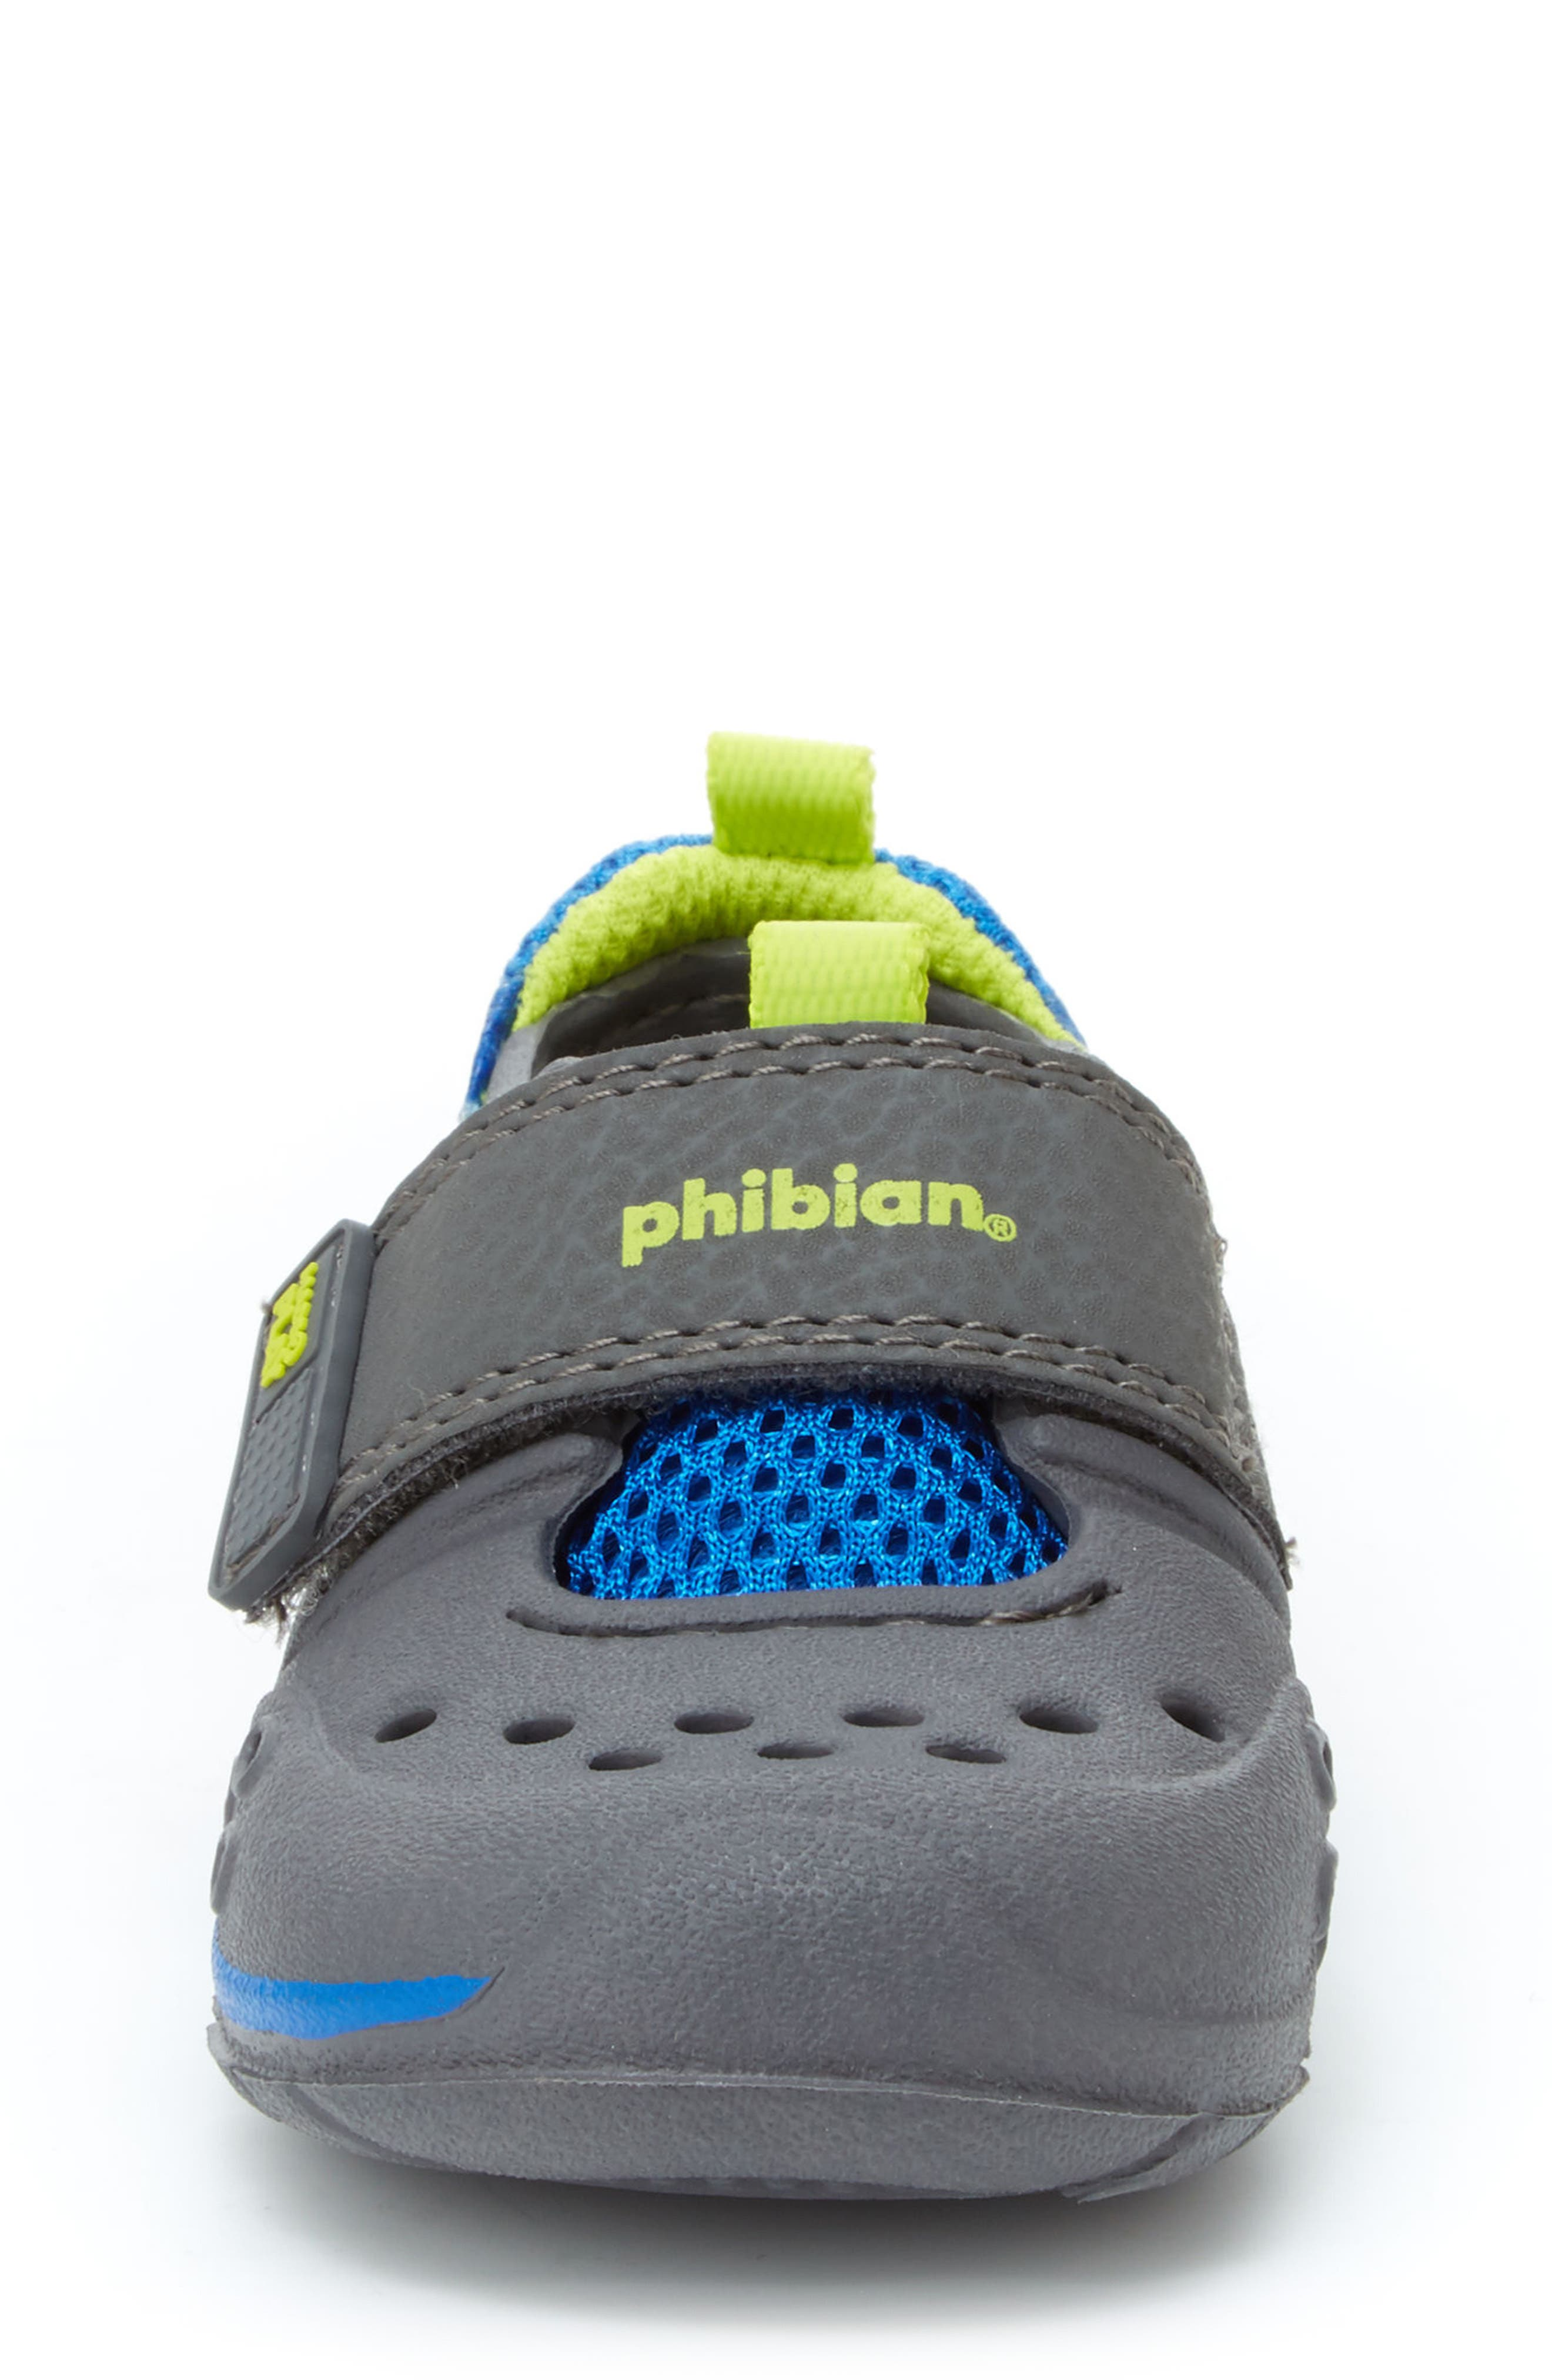 Made2Play<sup>®</sup> Phibian Sneaker,                             Alternate thumbnail 4, color,                             GREY/ GREY